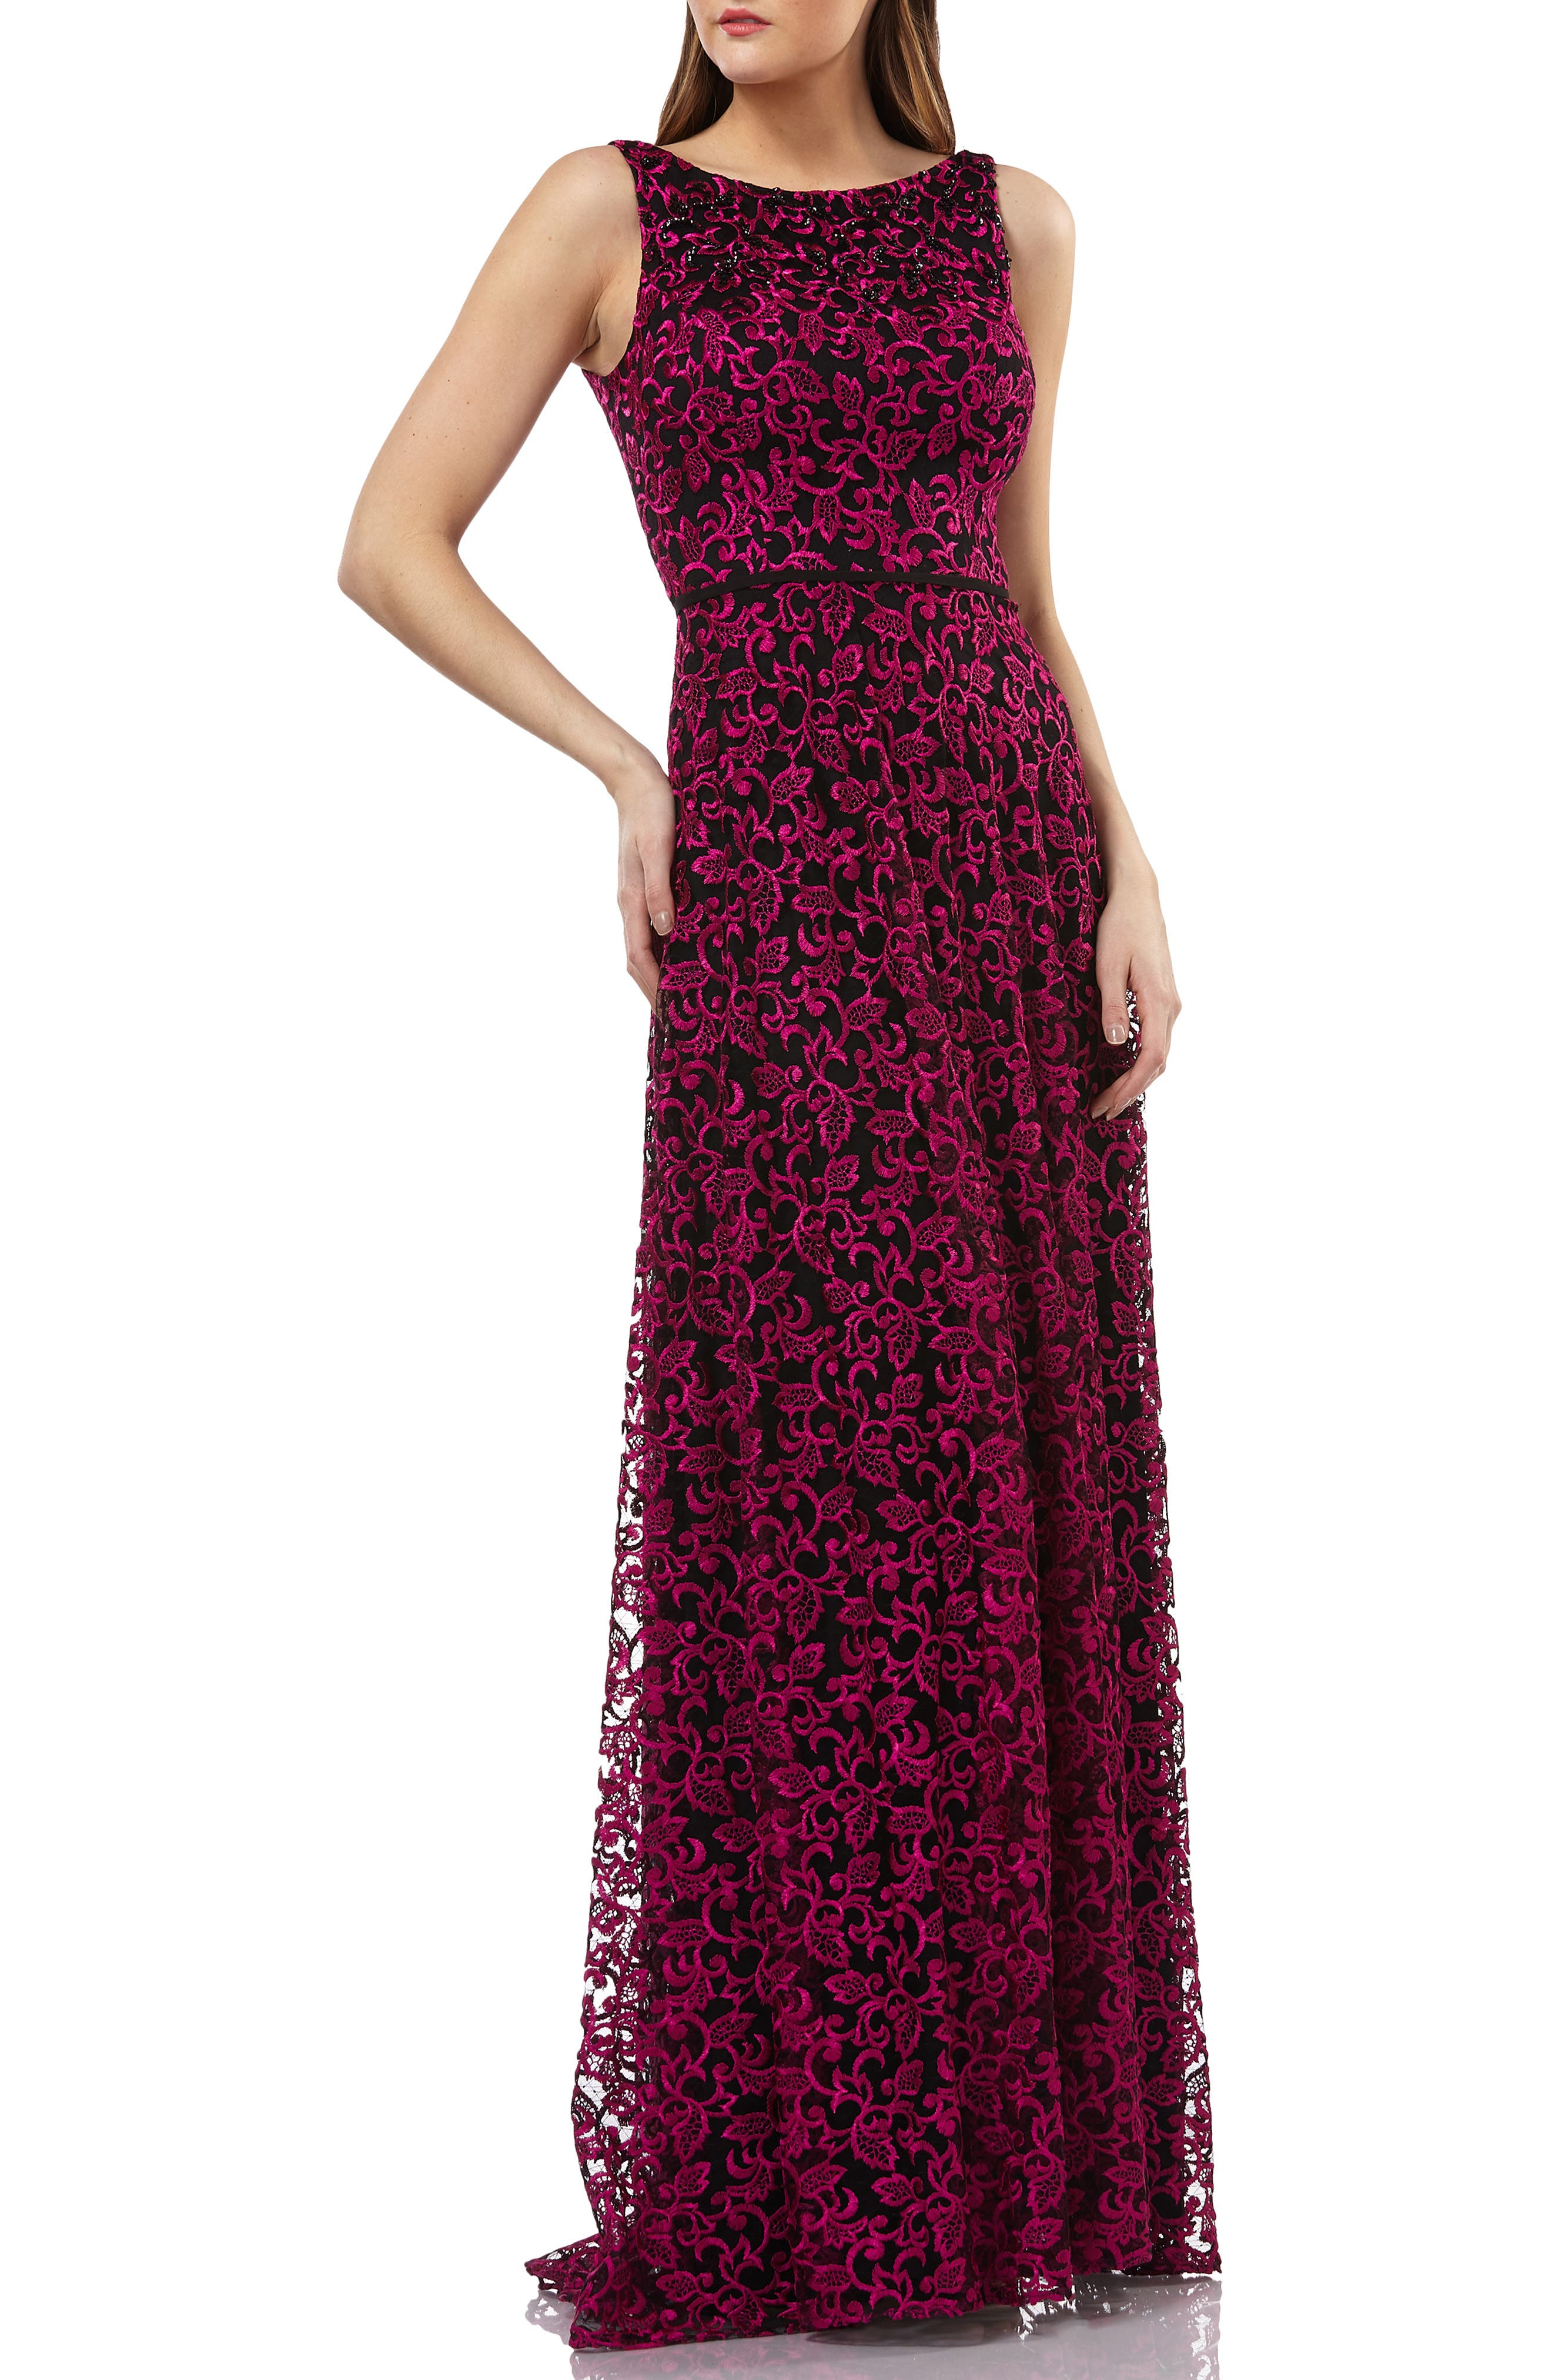 CARMEN MARC VALVO INFUSION Embellished Lace Gown in Black/ Fuchsia